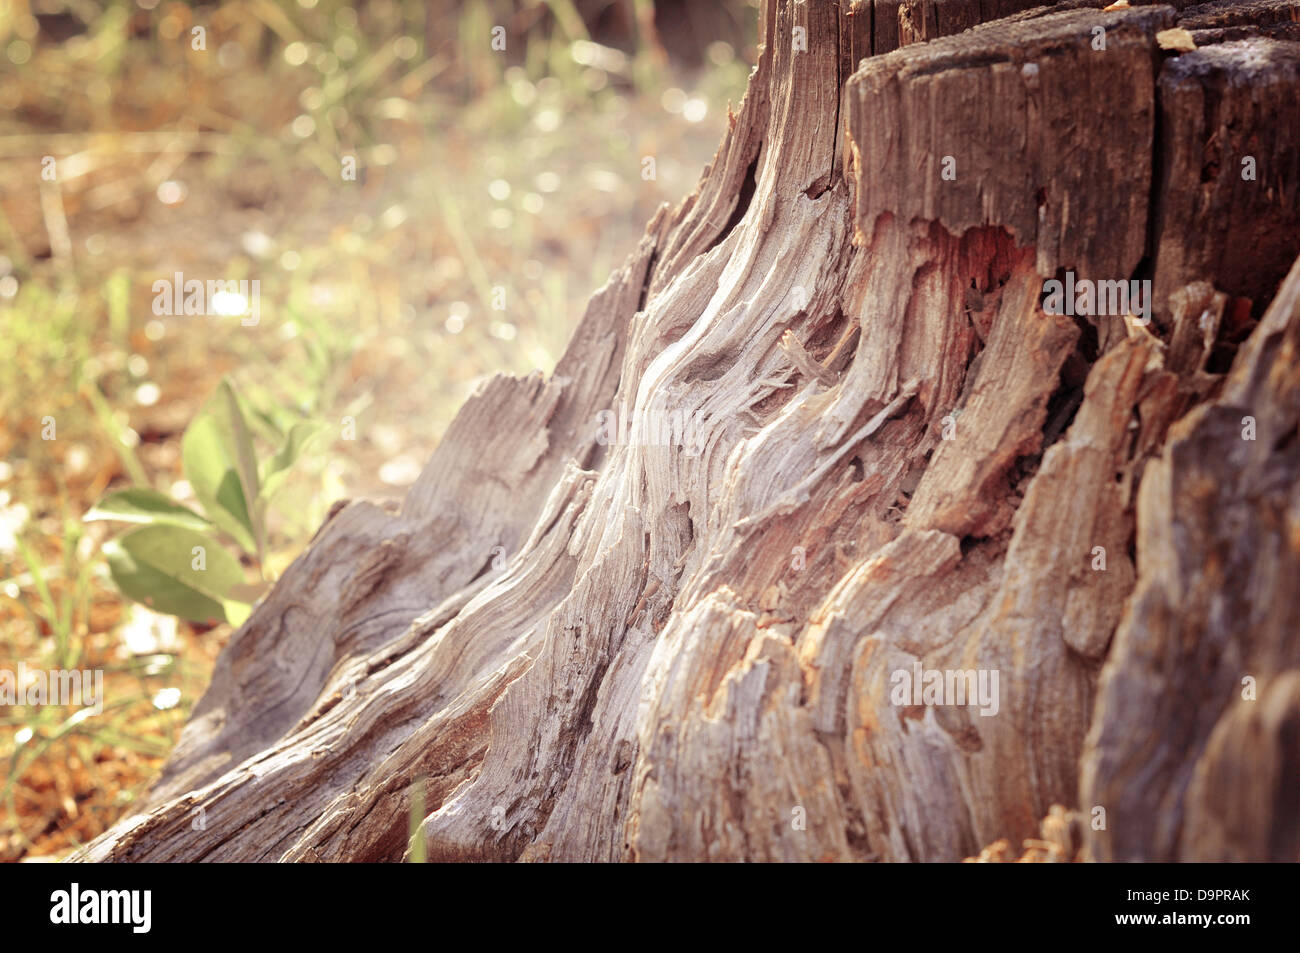 Photo of ramshackle tree stump in the forest close up - Stock Image